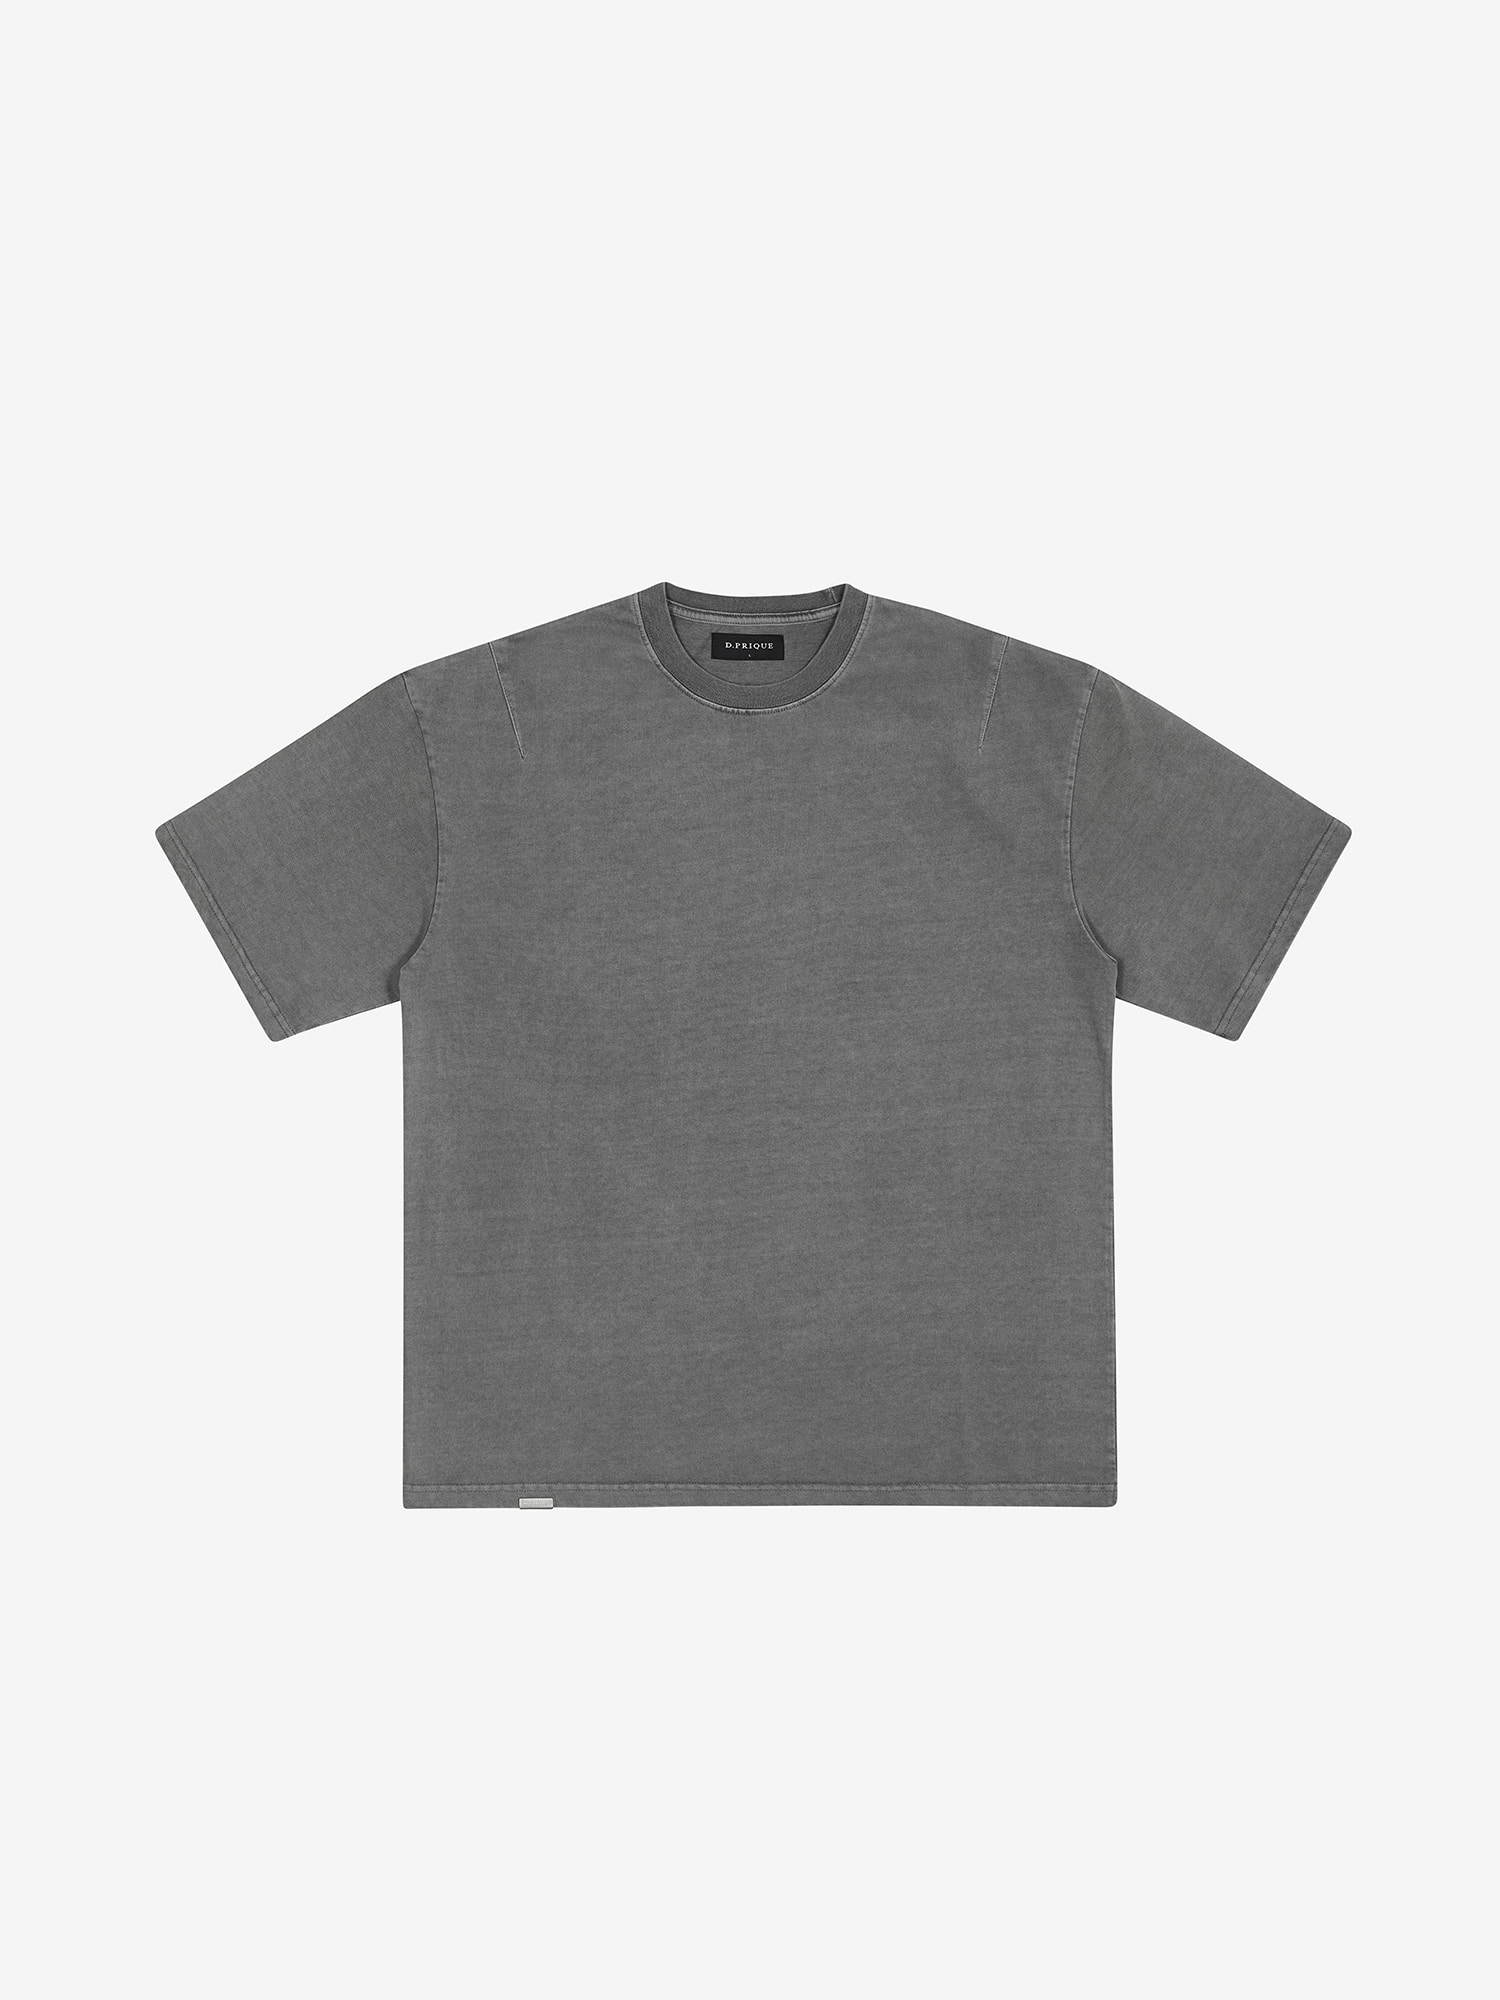 CLASSIC T-SHIRT - WASHED GREY